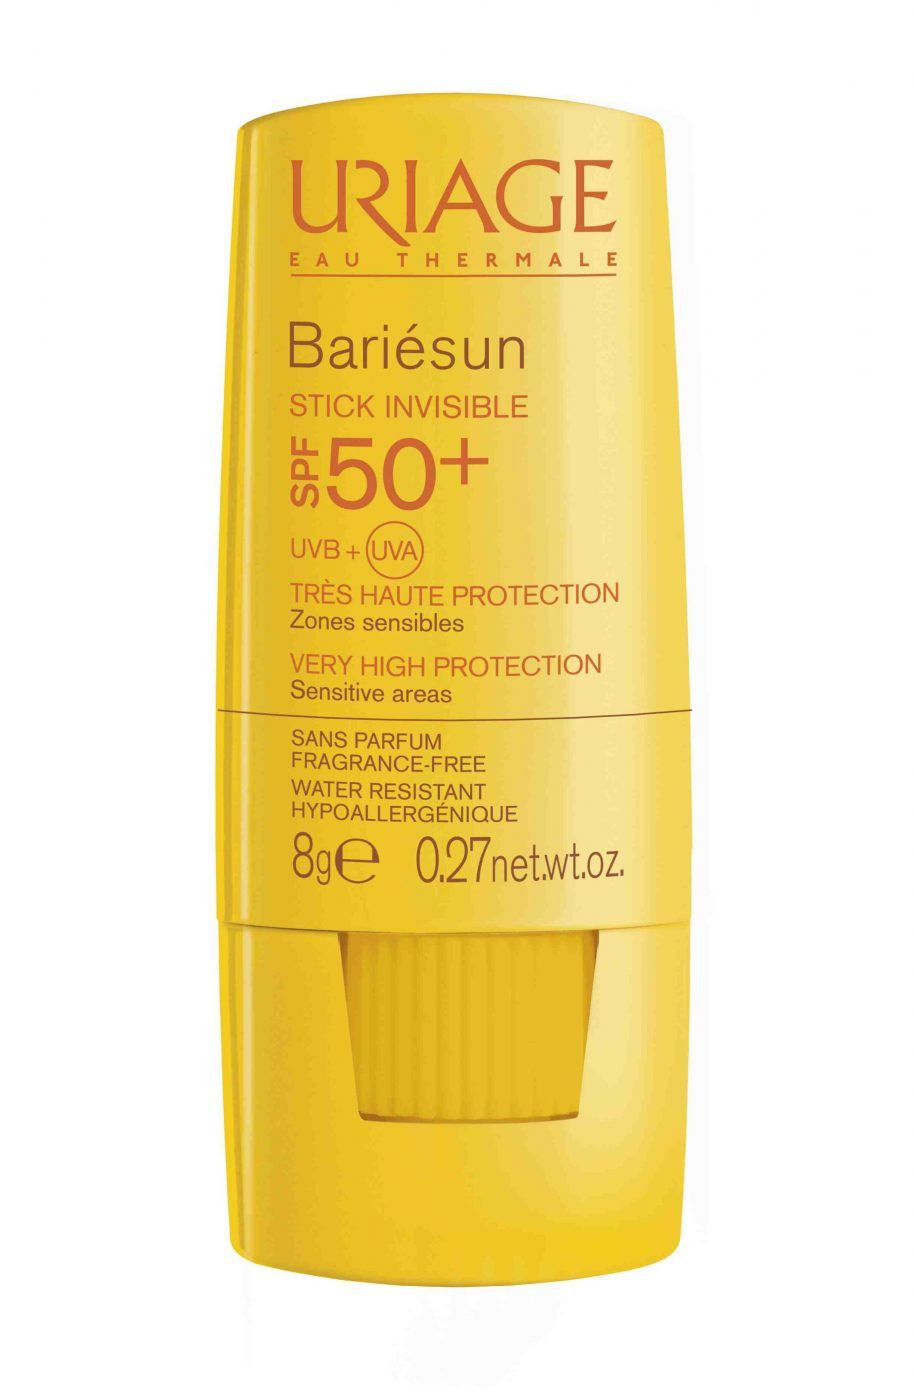 Uriage Bariésun Stick